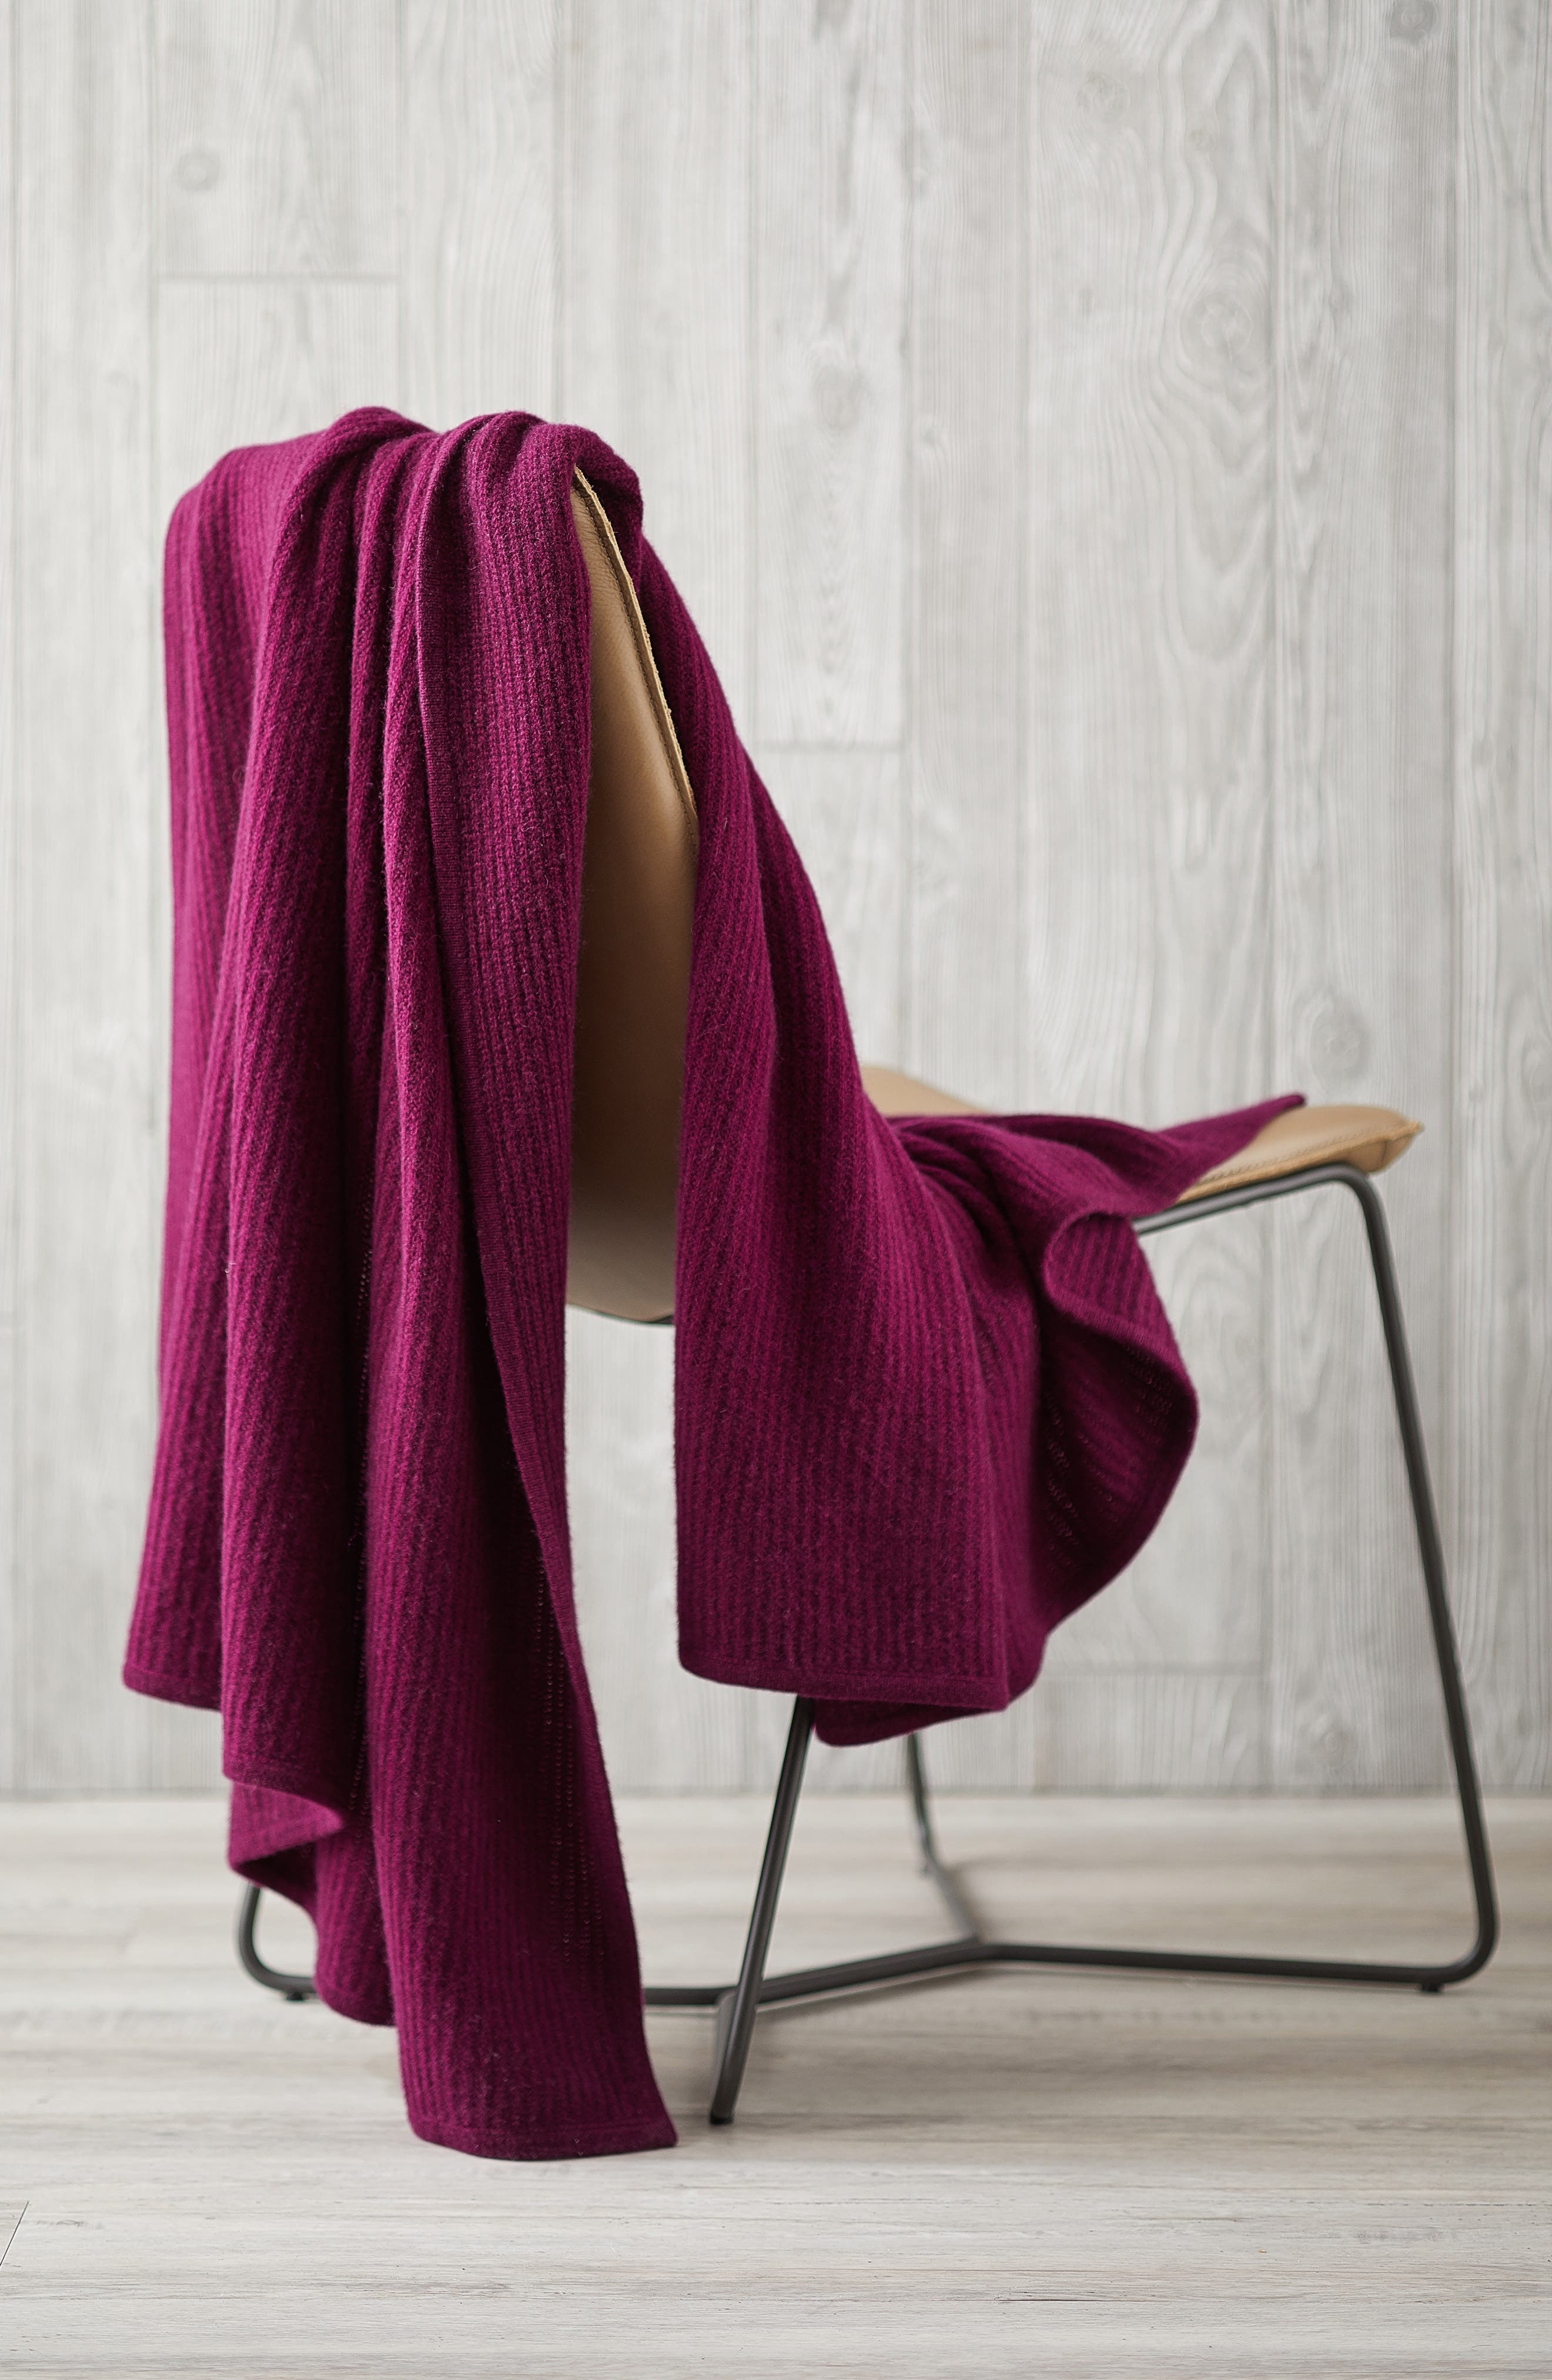 Lattice Cashmere Throw Blanket,                             Alternate thumbnail 22, color,